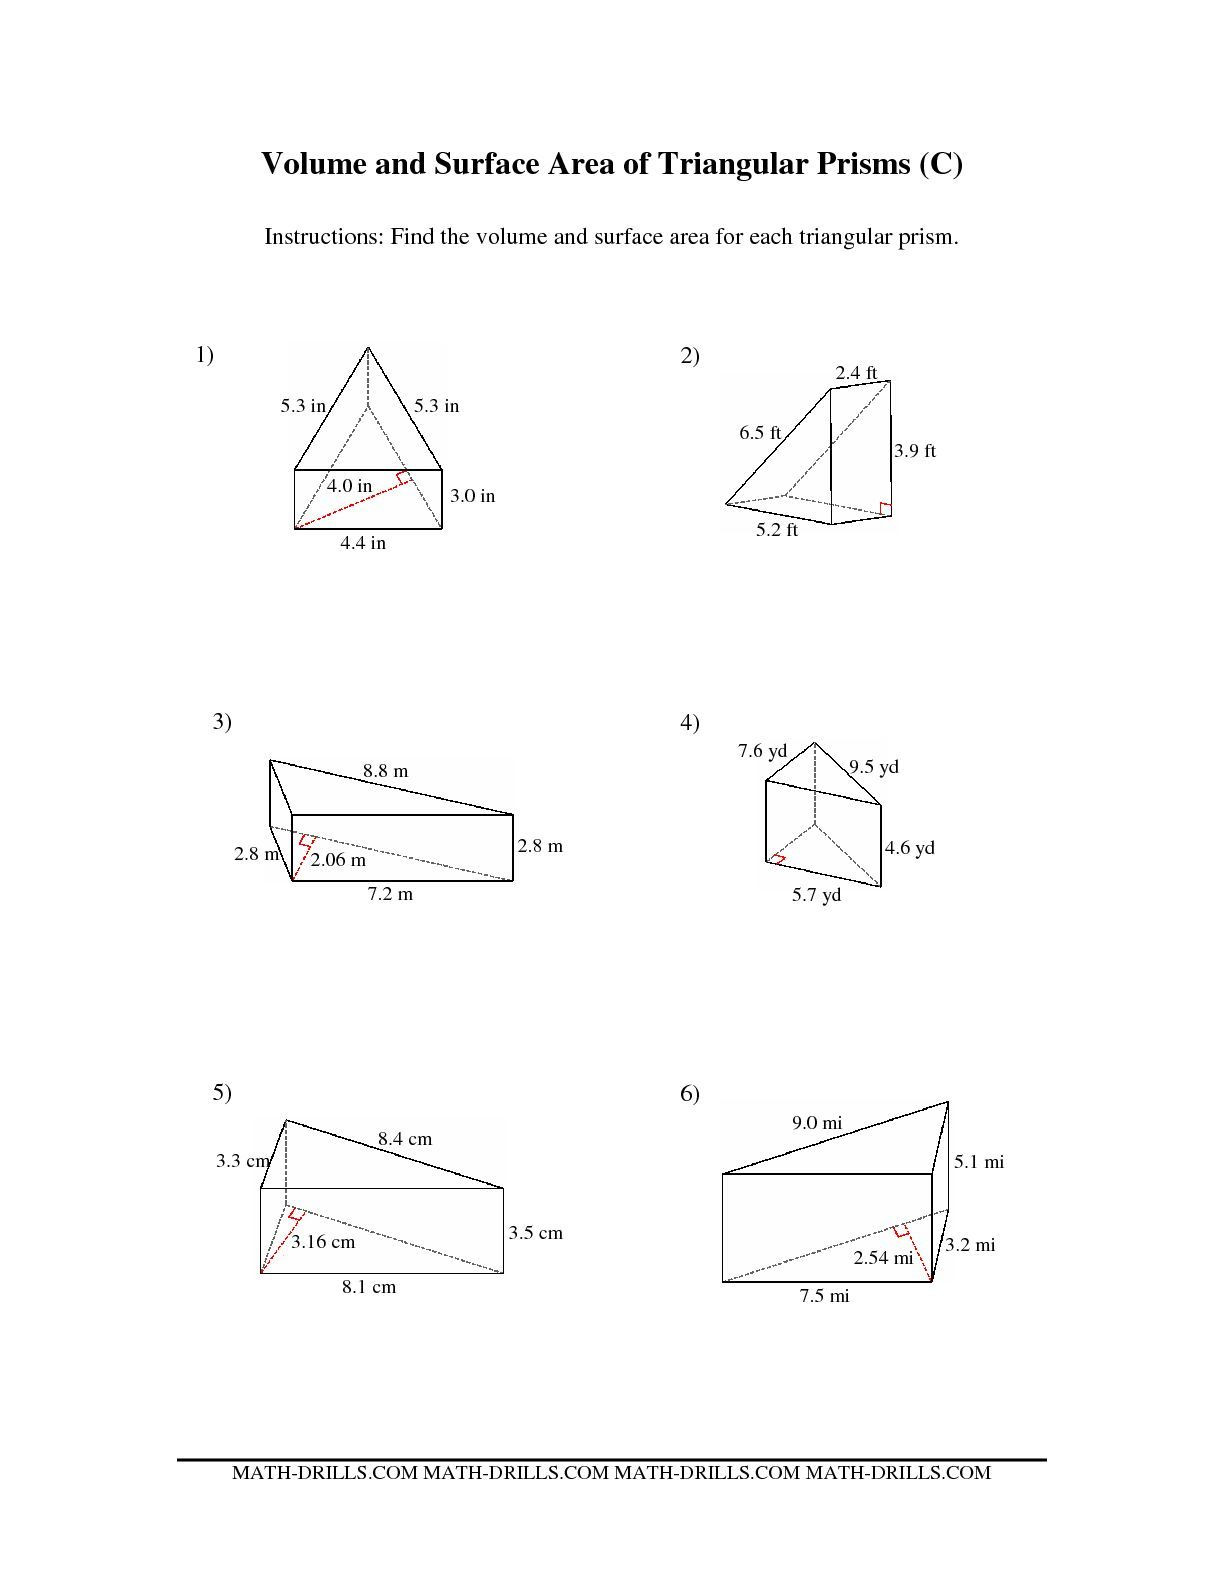 Volume Worksheets 3rd Grade the Volume and Surface area Of Triangular Prisms C Math